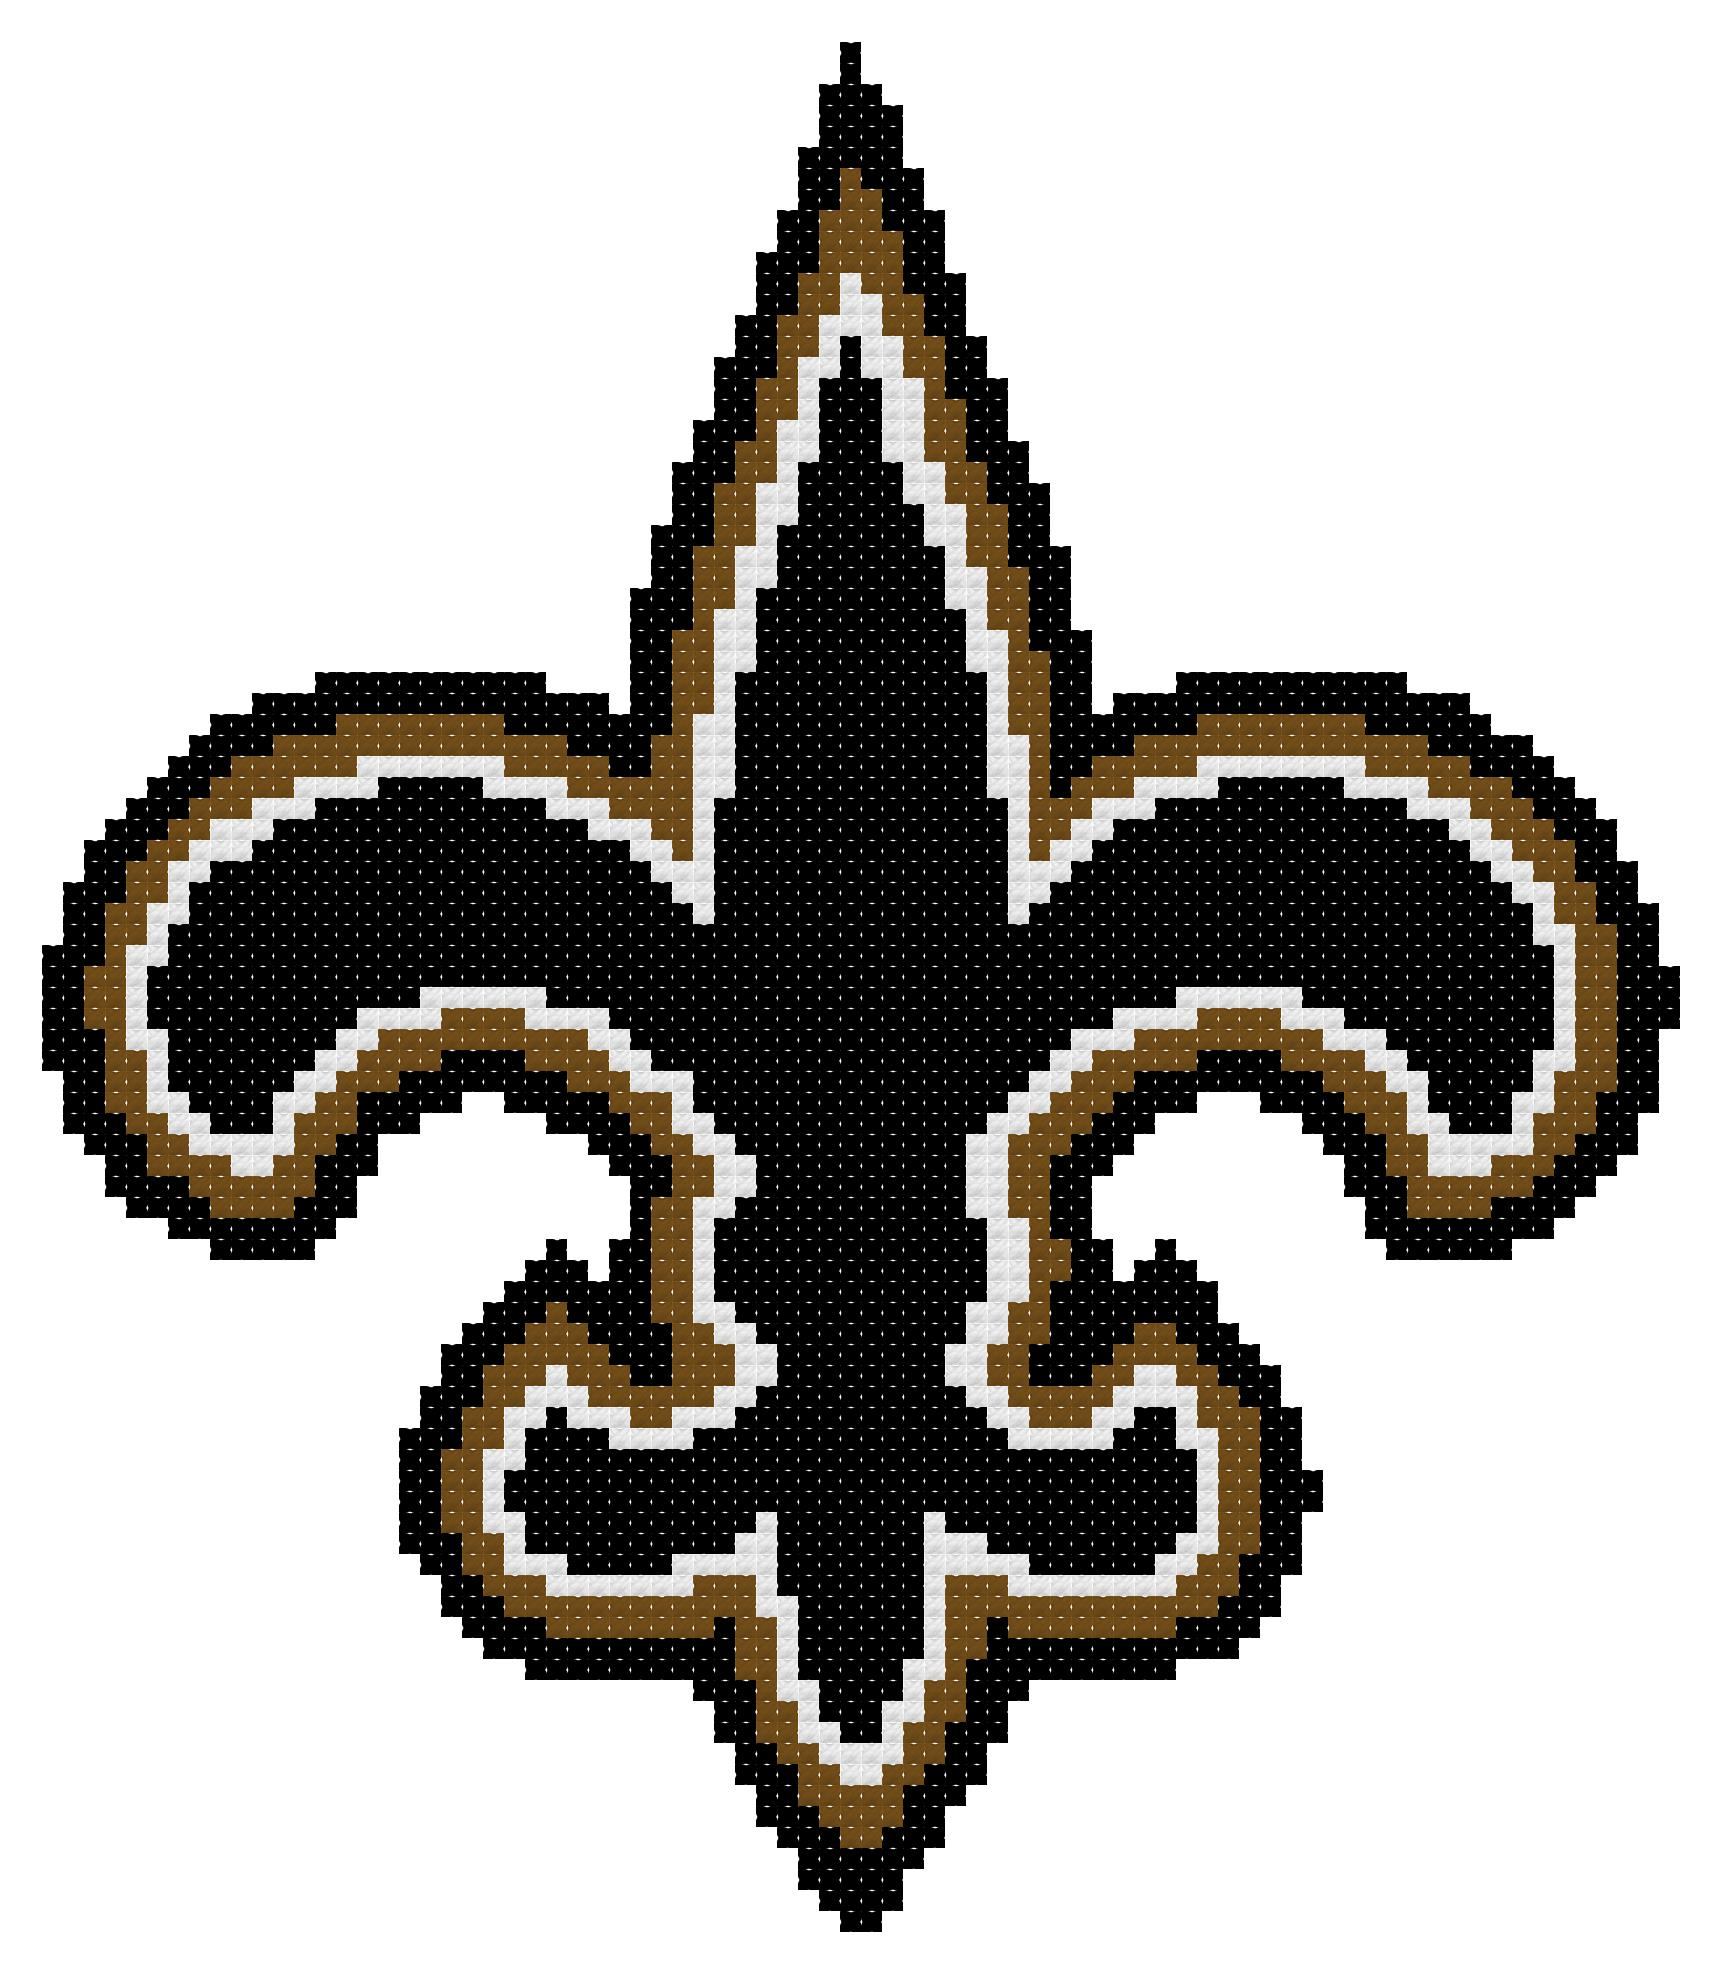 Counted Cross Stitch Pattern New Orleans Saints Logo The Cross